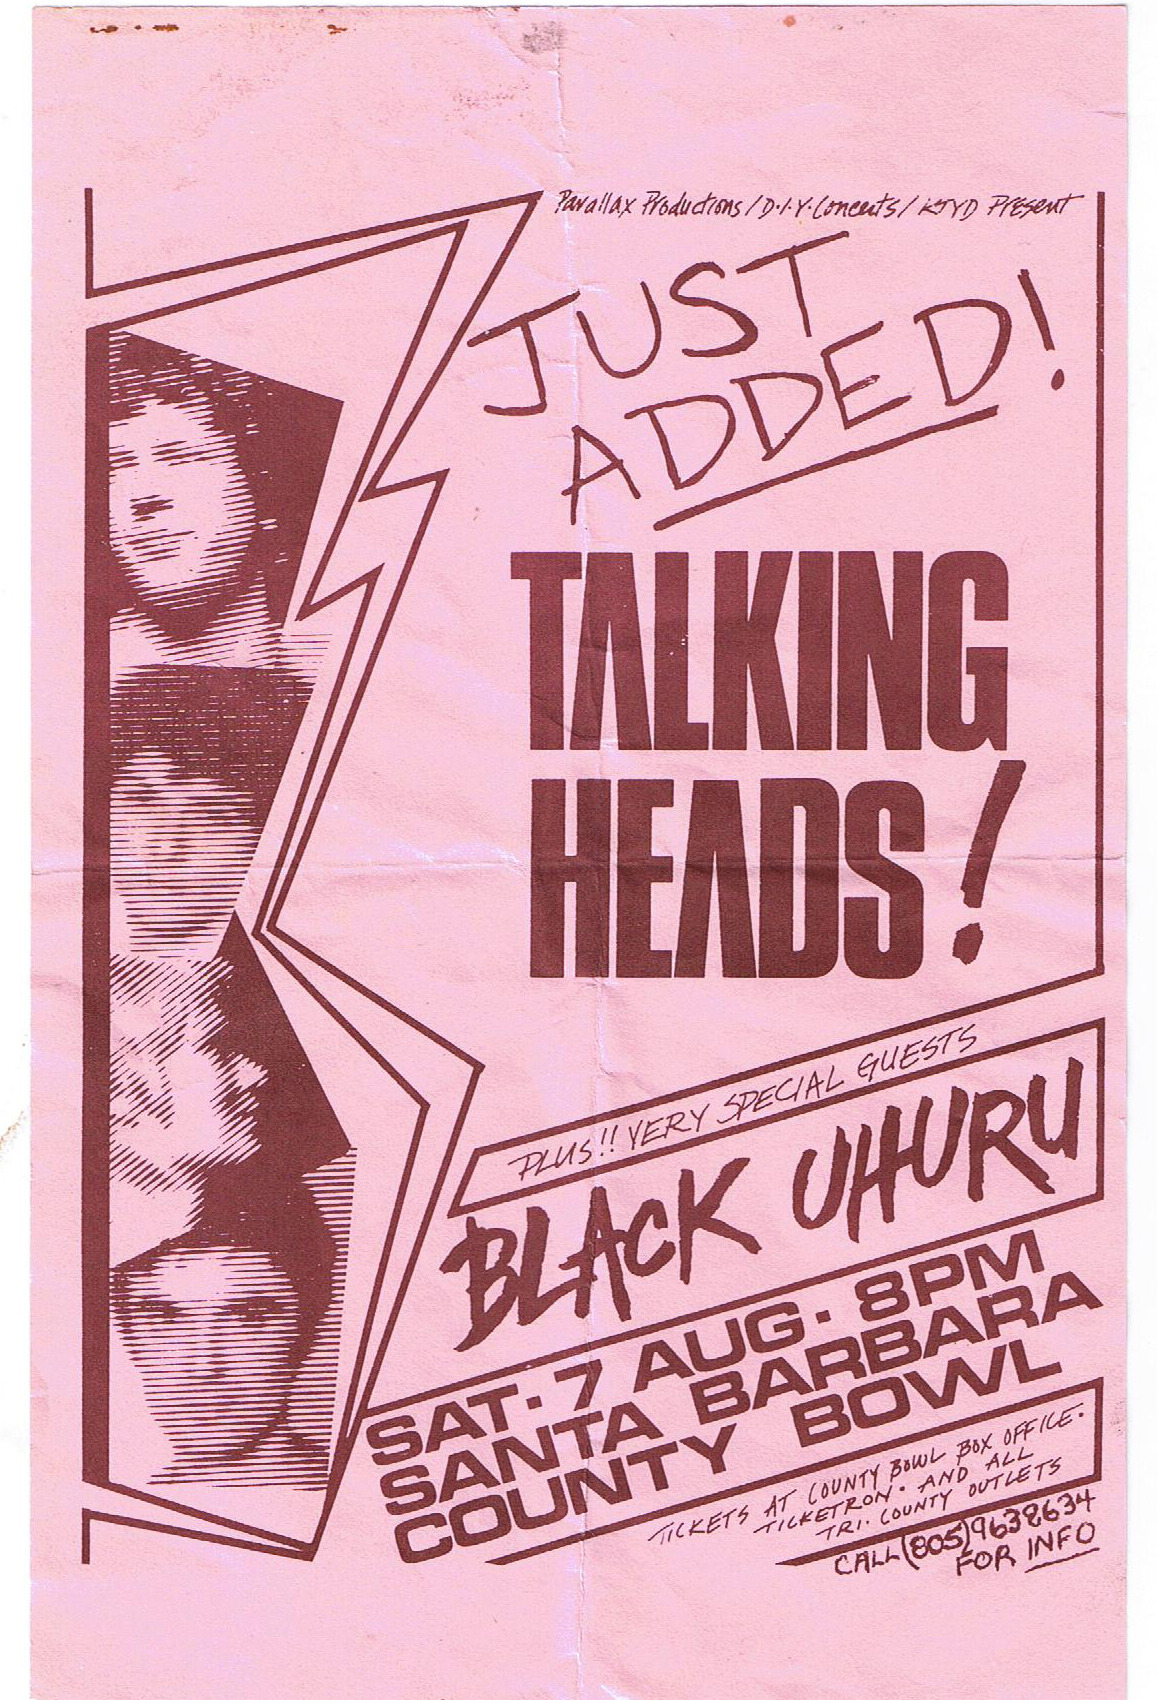 zombiesenelghetto:  Talking Heads, flyer Santa Barbara County Bowl, August , 1982